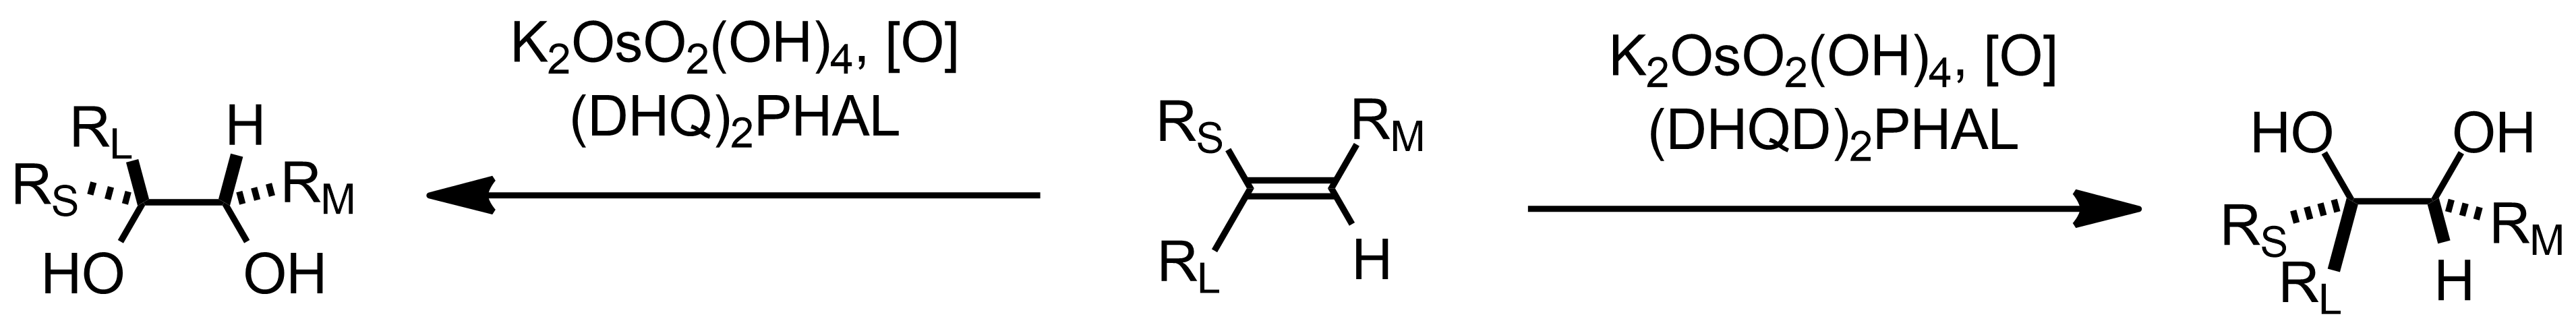 Schematic representation of the Sharpless Asymmetric Dihydroxylation.